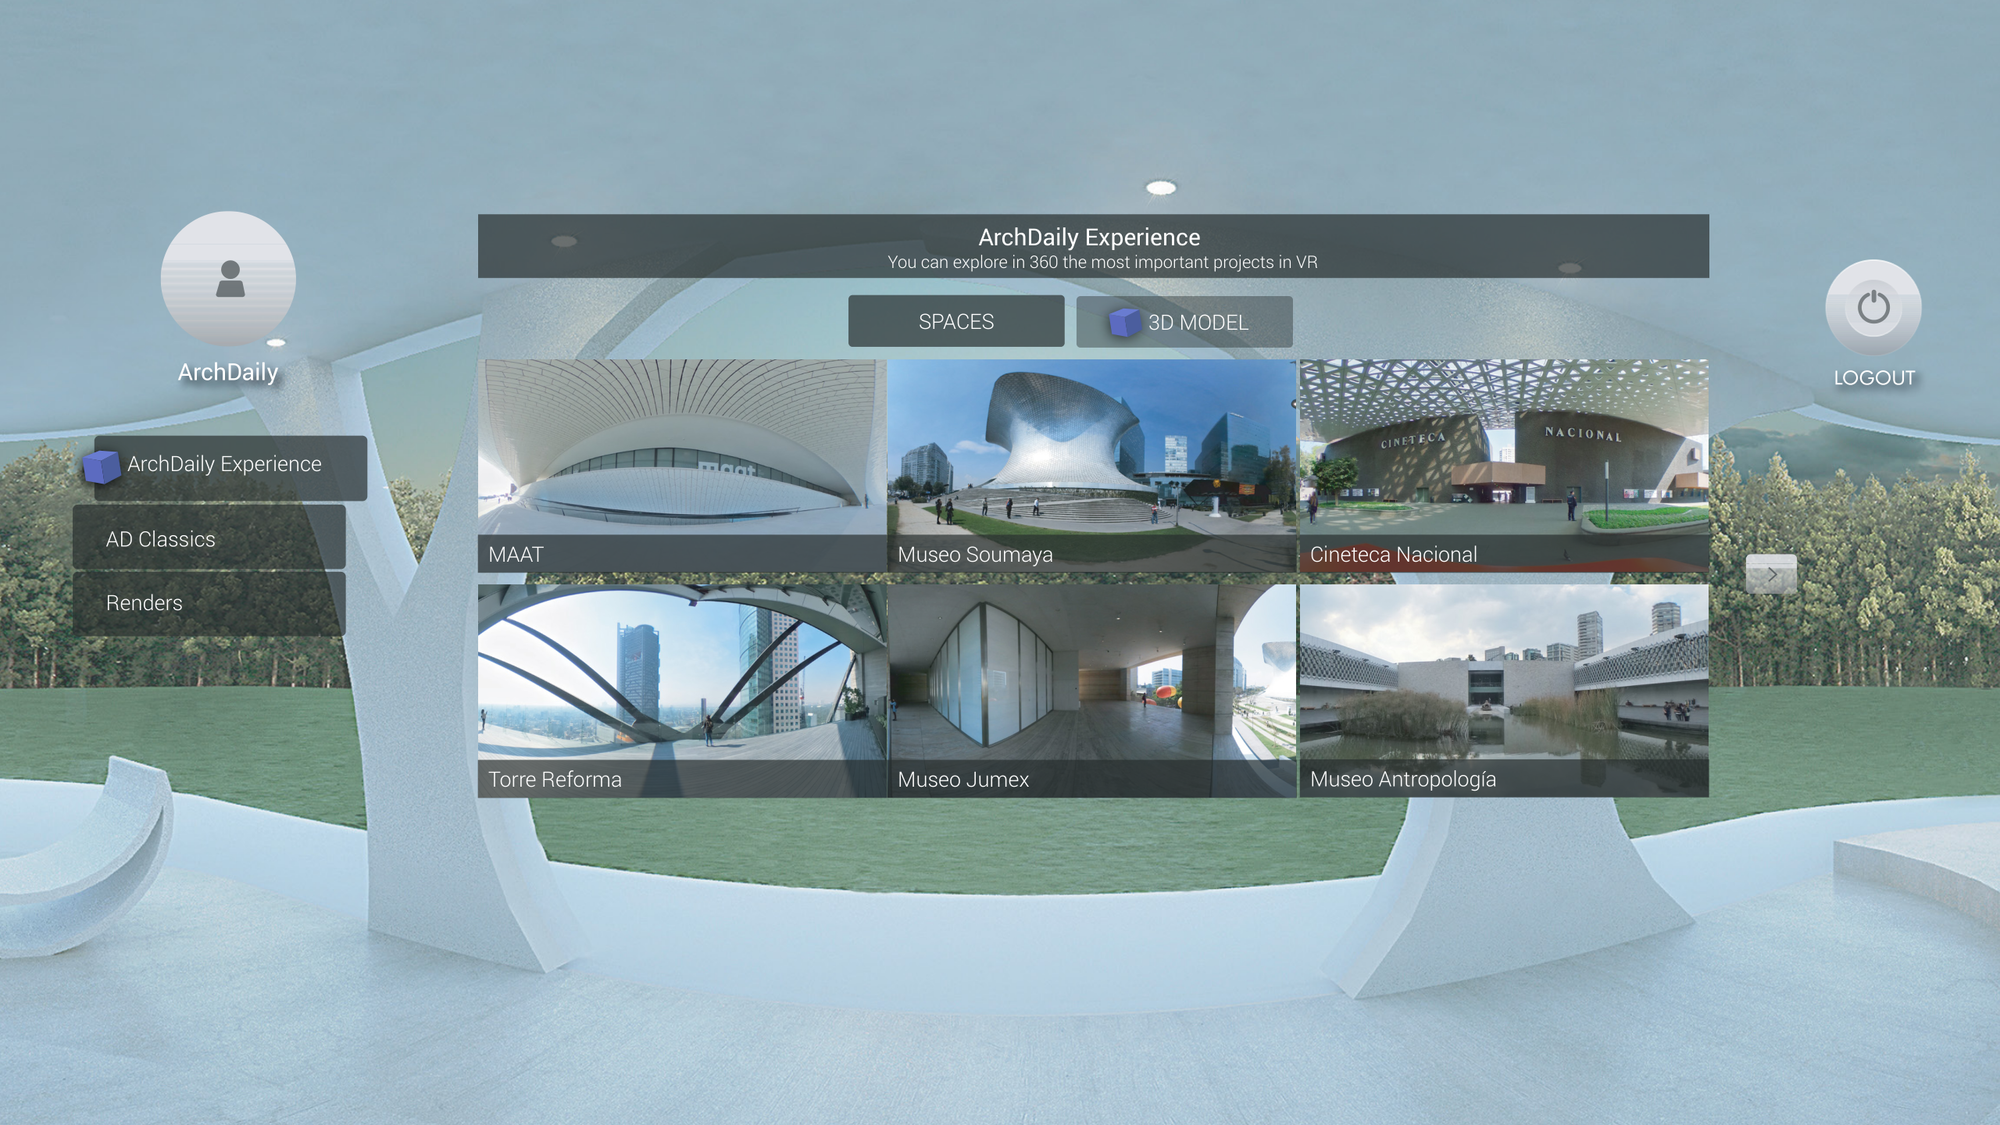 Interface to select Projects, 360 spaces and 3D models uploaded to your account